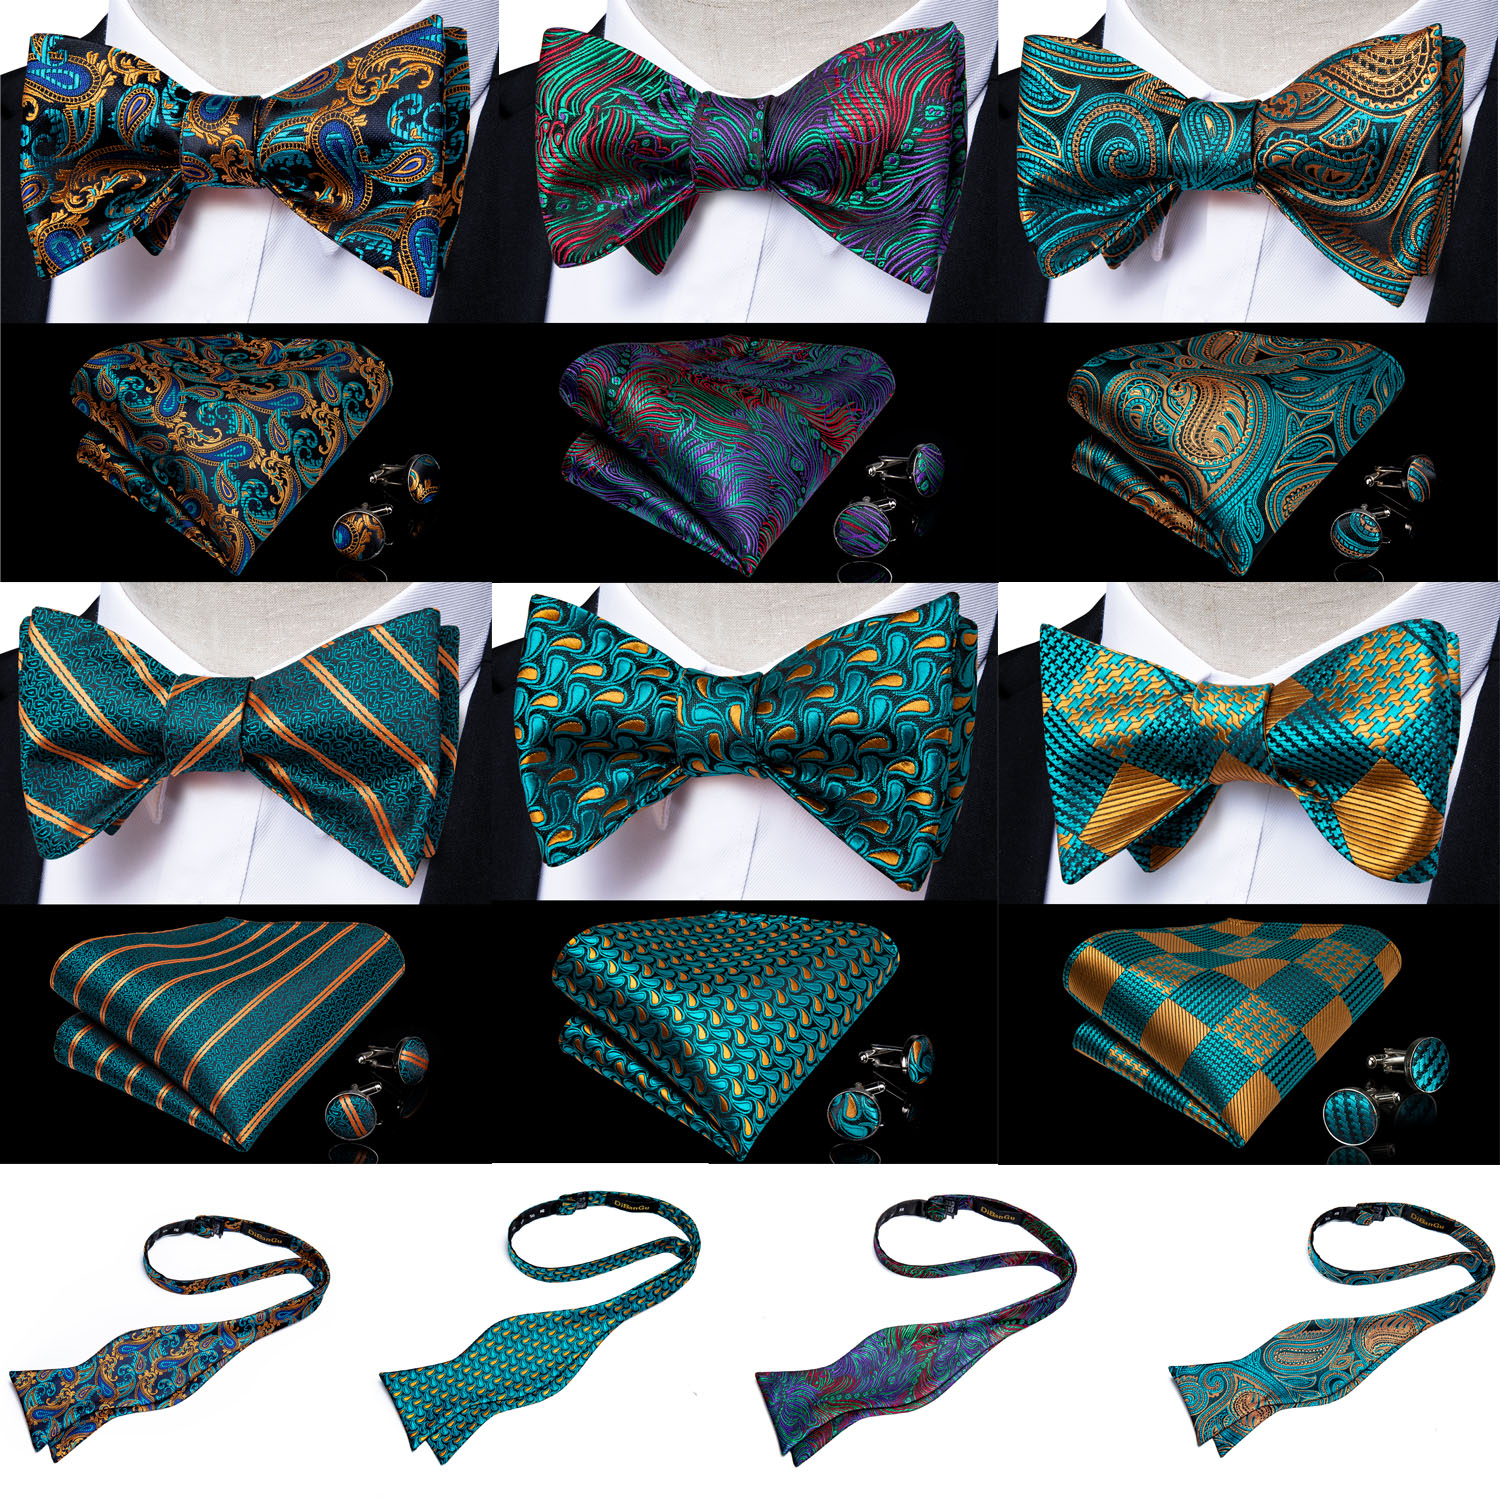 Teal Green Gold Floral Paisley 100%Silk Woven Men Butterfly Self Bow Tie Pocket Square Set Groom Tuxedo Butterfly Bow DiBanGu